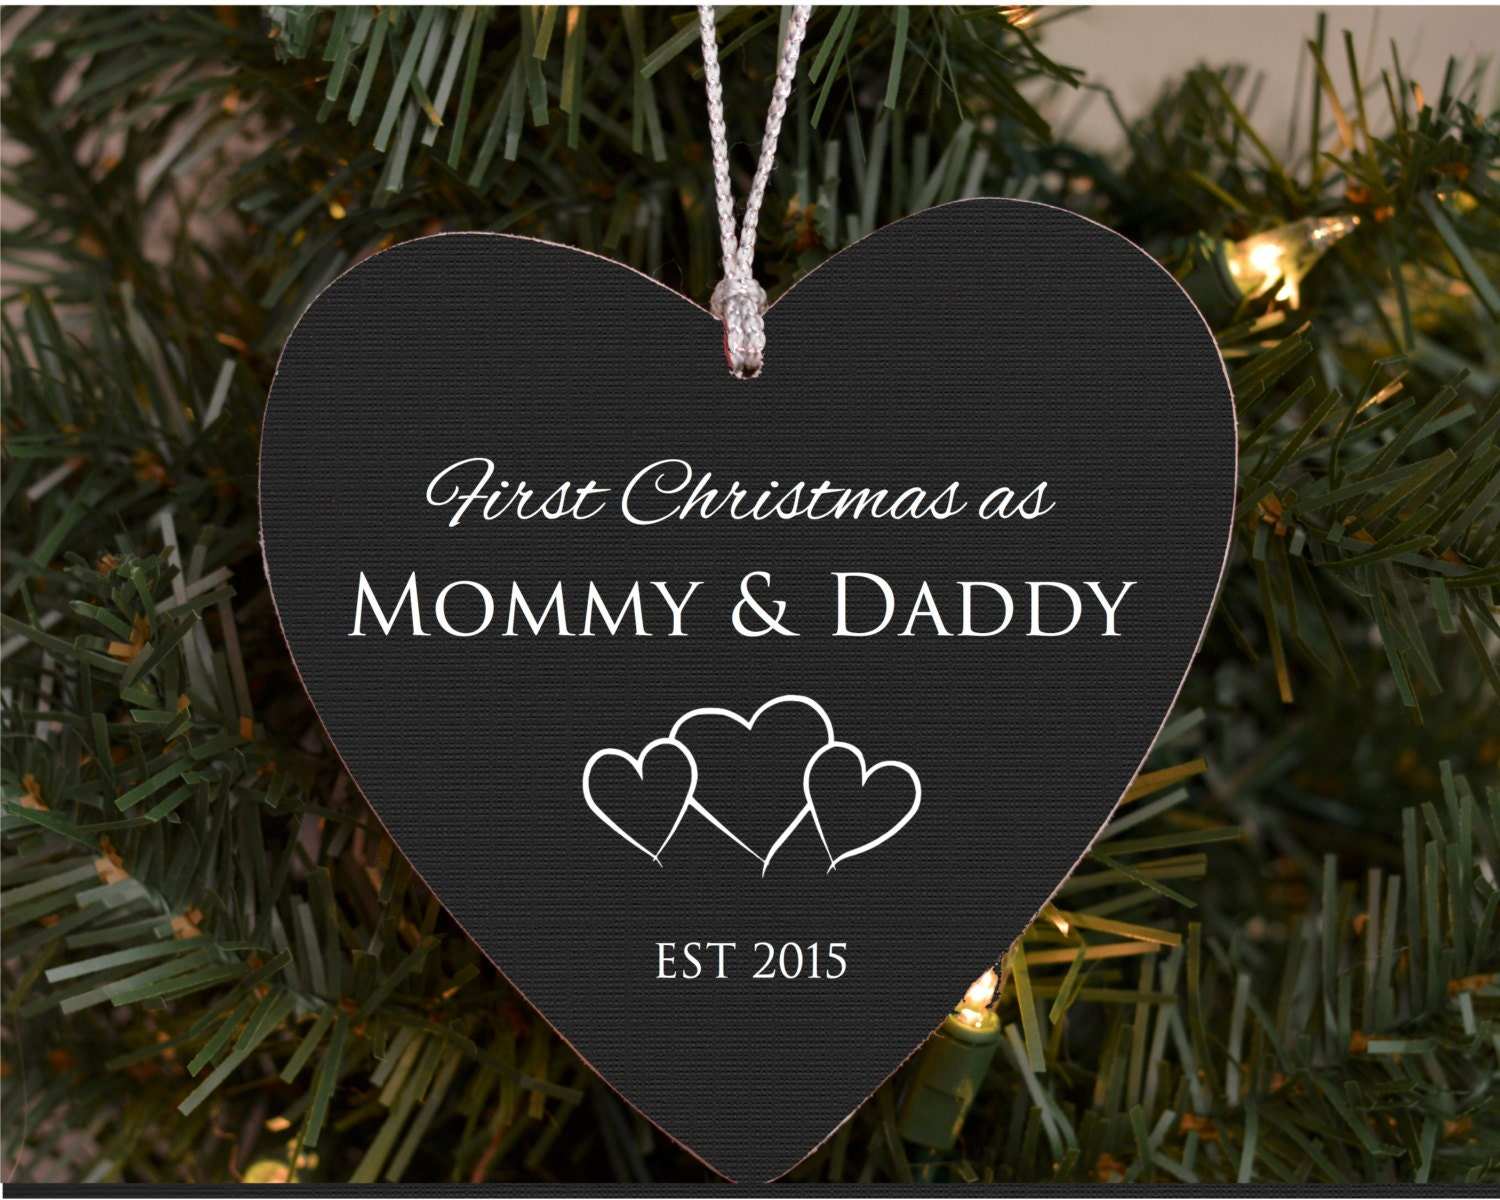 Christmas ornament expecting baby - Our First Christmas As Mommy Daddy Personalized Christmas Ornament New Parents Ornament New Baby Ornament